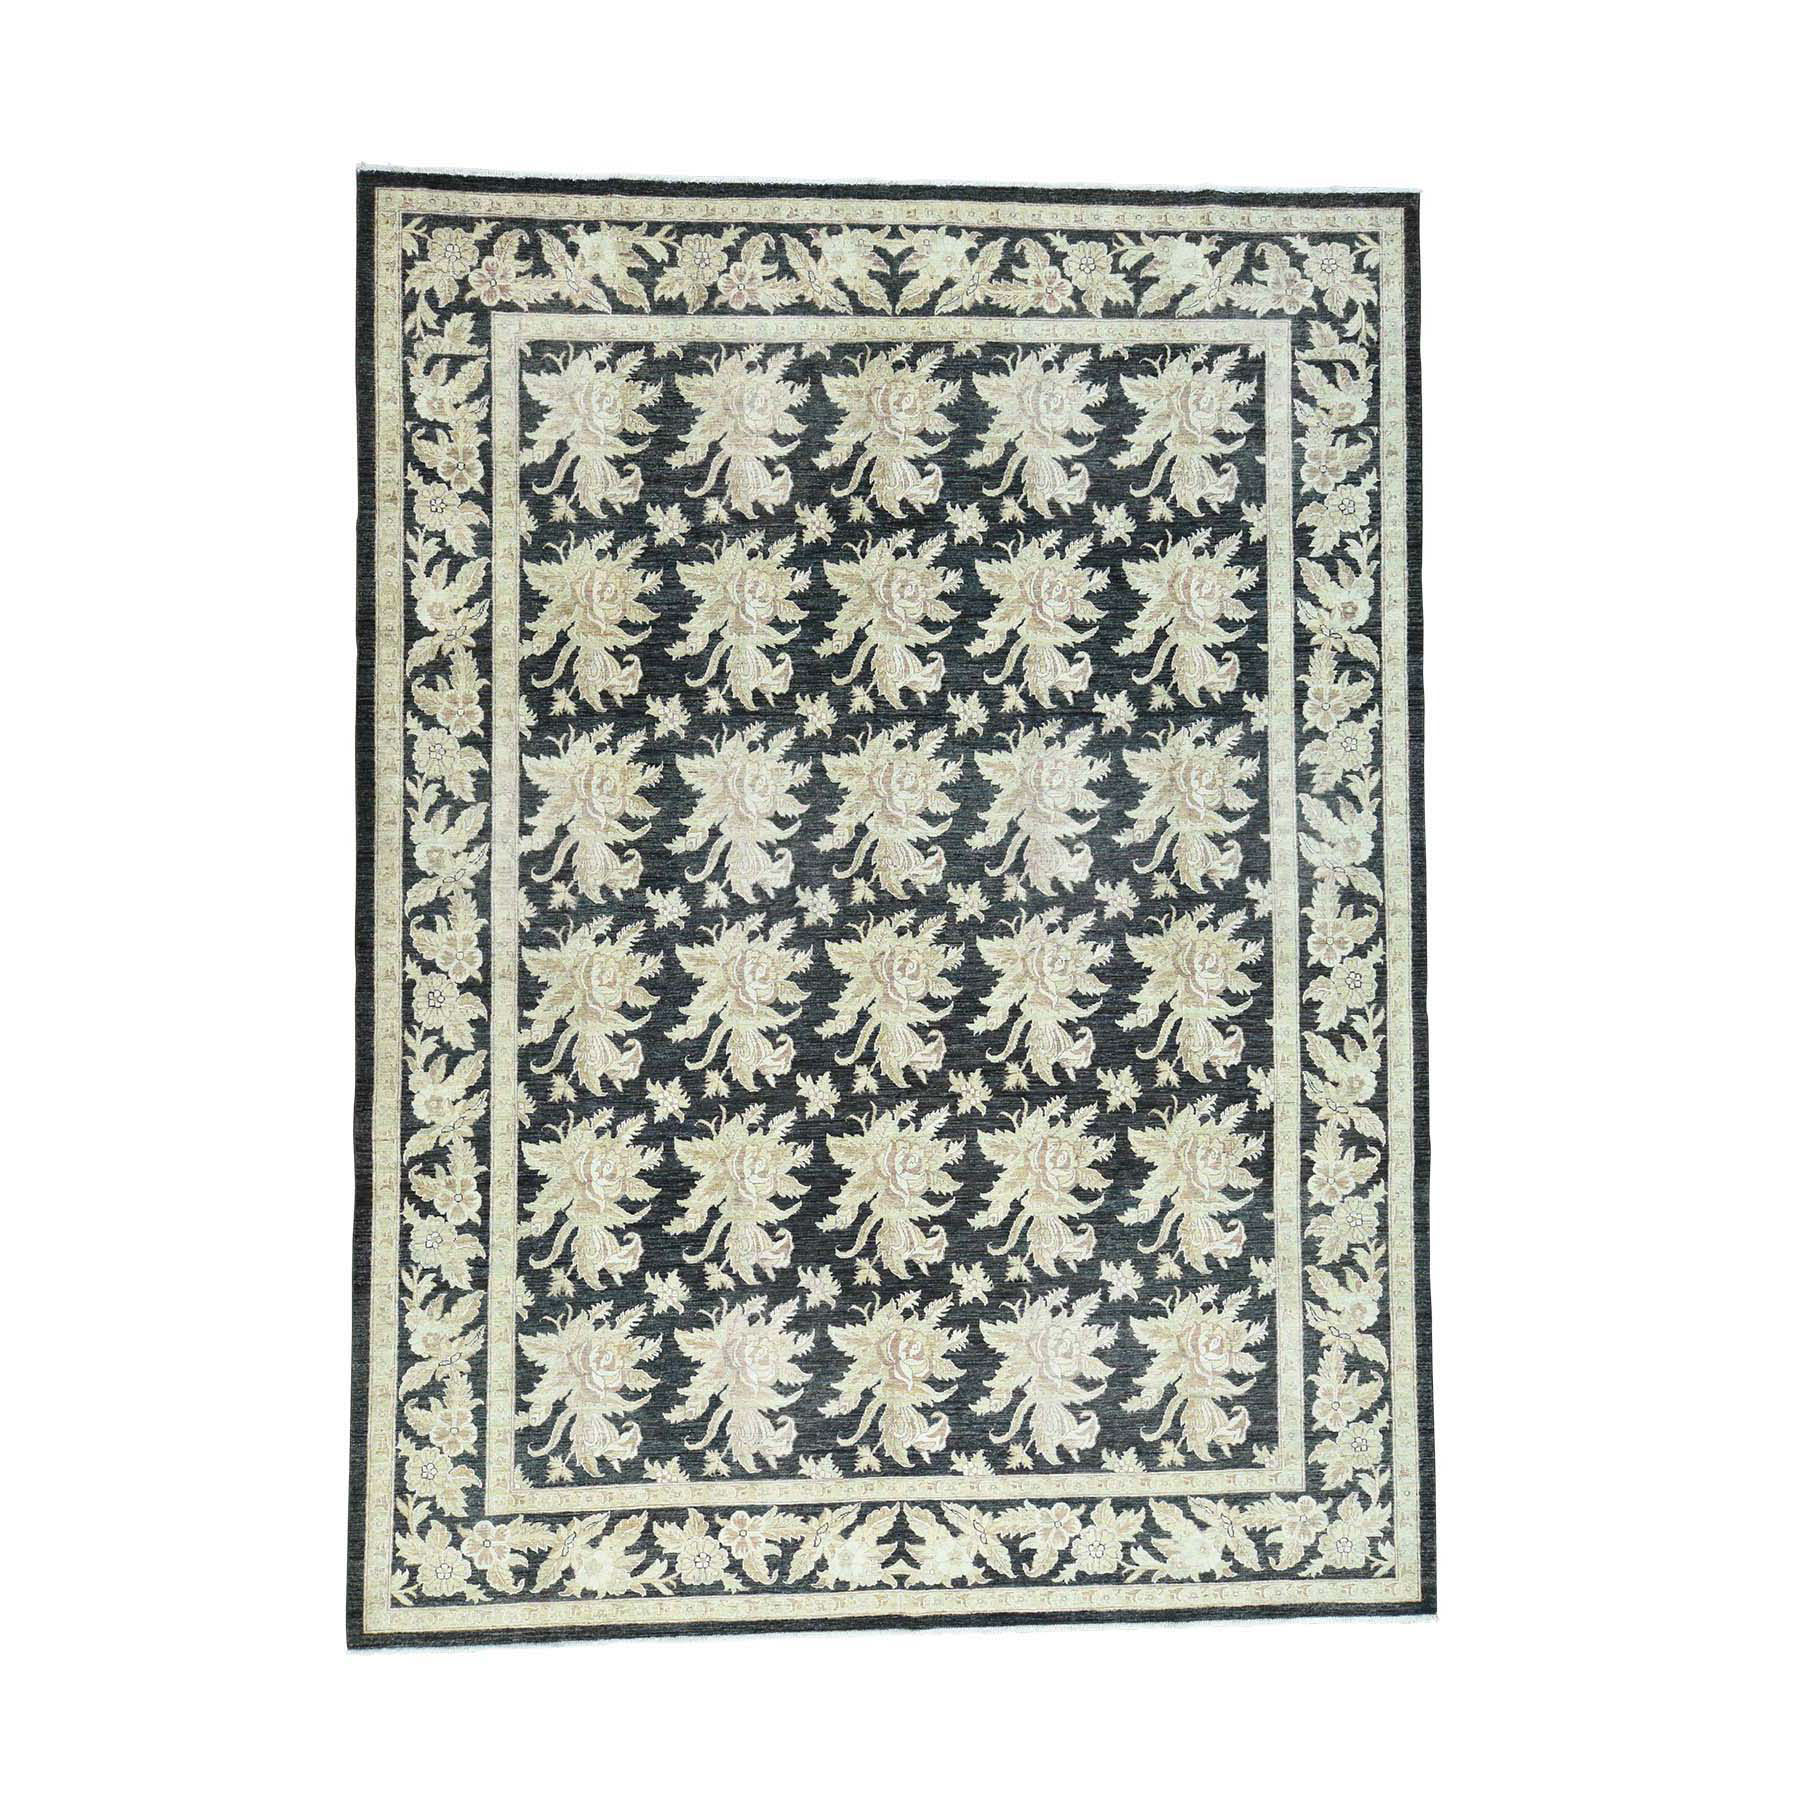 "9'1""x12'4"" Dense Weave Peshawar With Flower Design Hand-Knotted Rug"